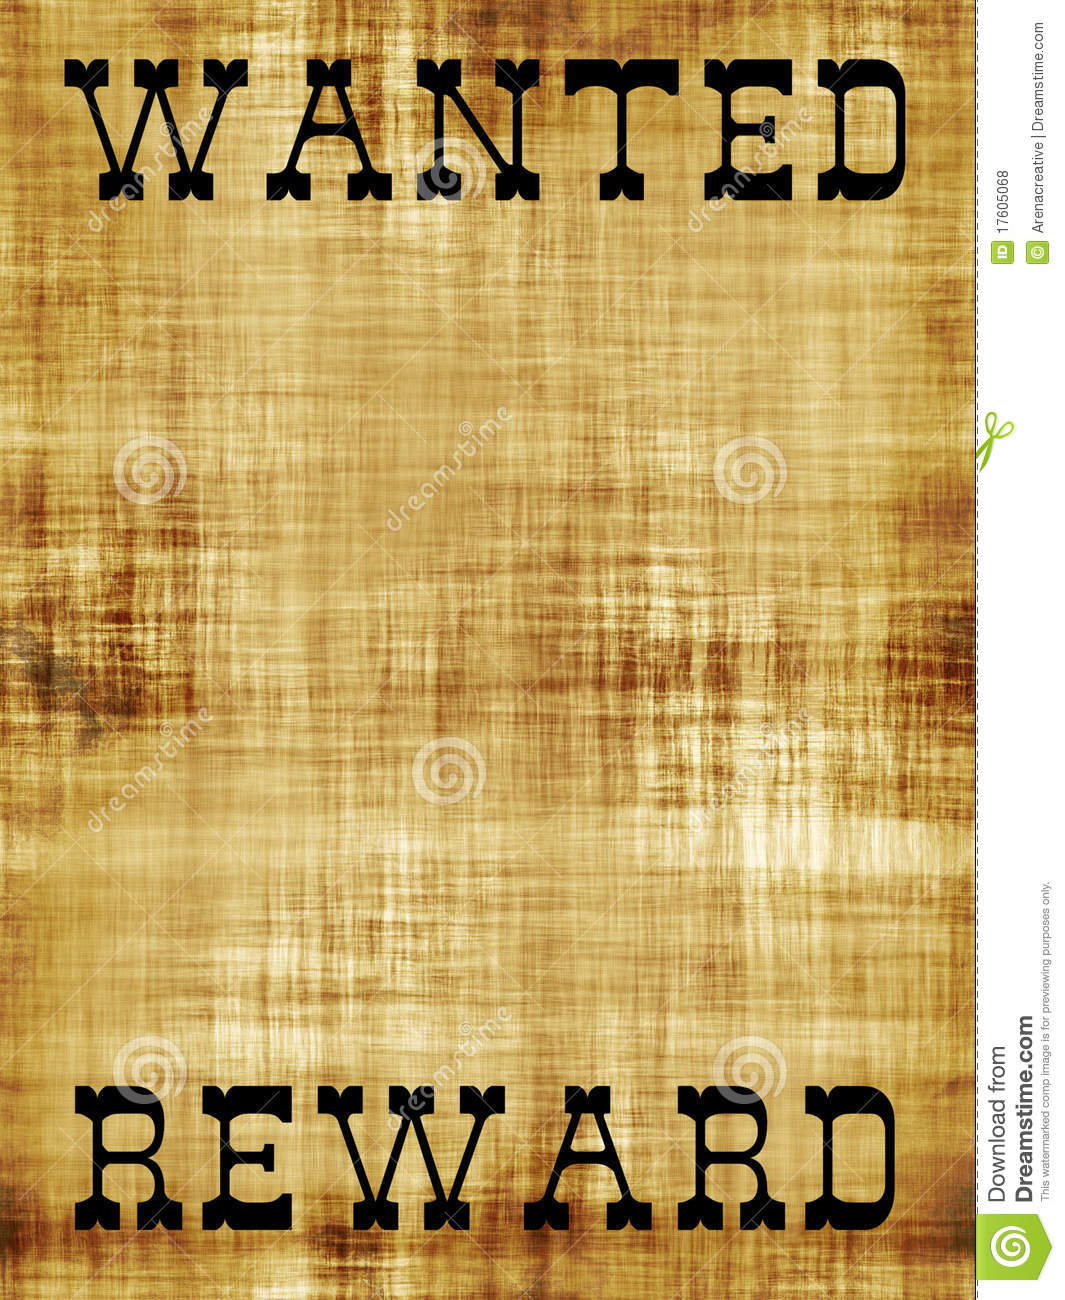 Blank Wanted Outlaw Poster Royalty Free Stock Photos